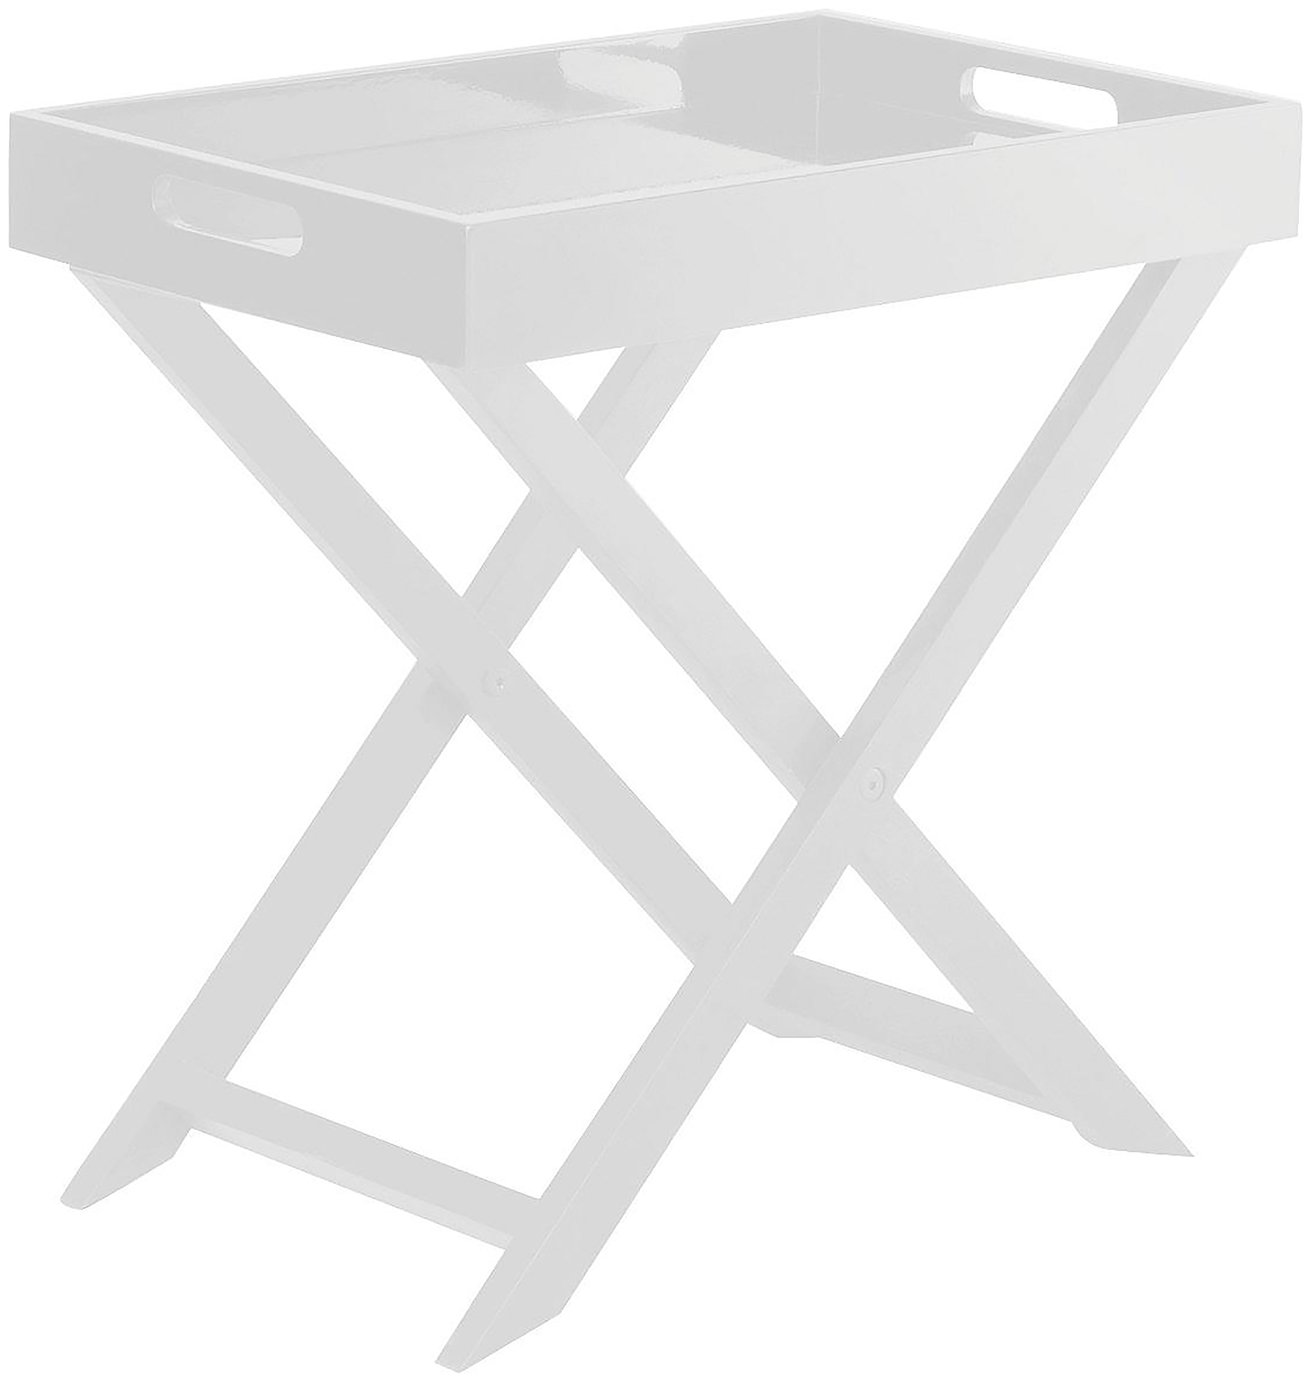 Habitat Oken Square Occasional Table - White